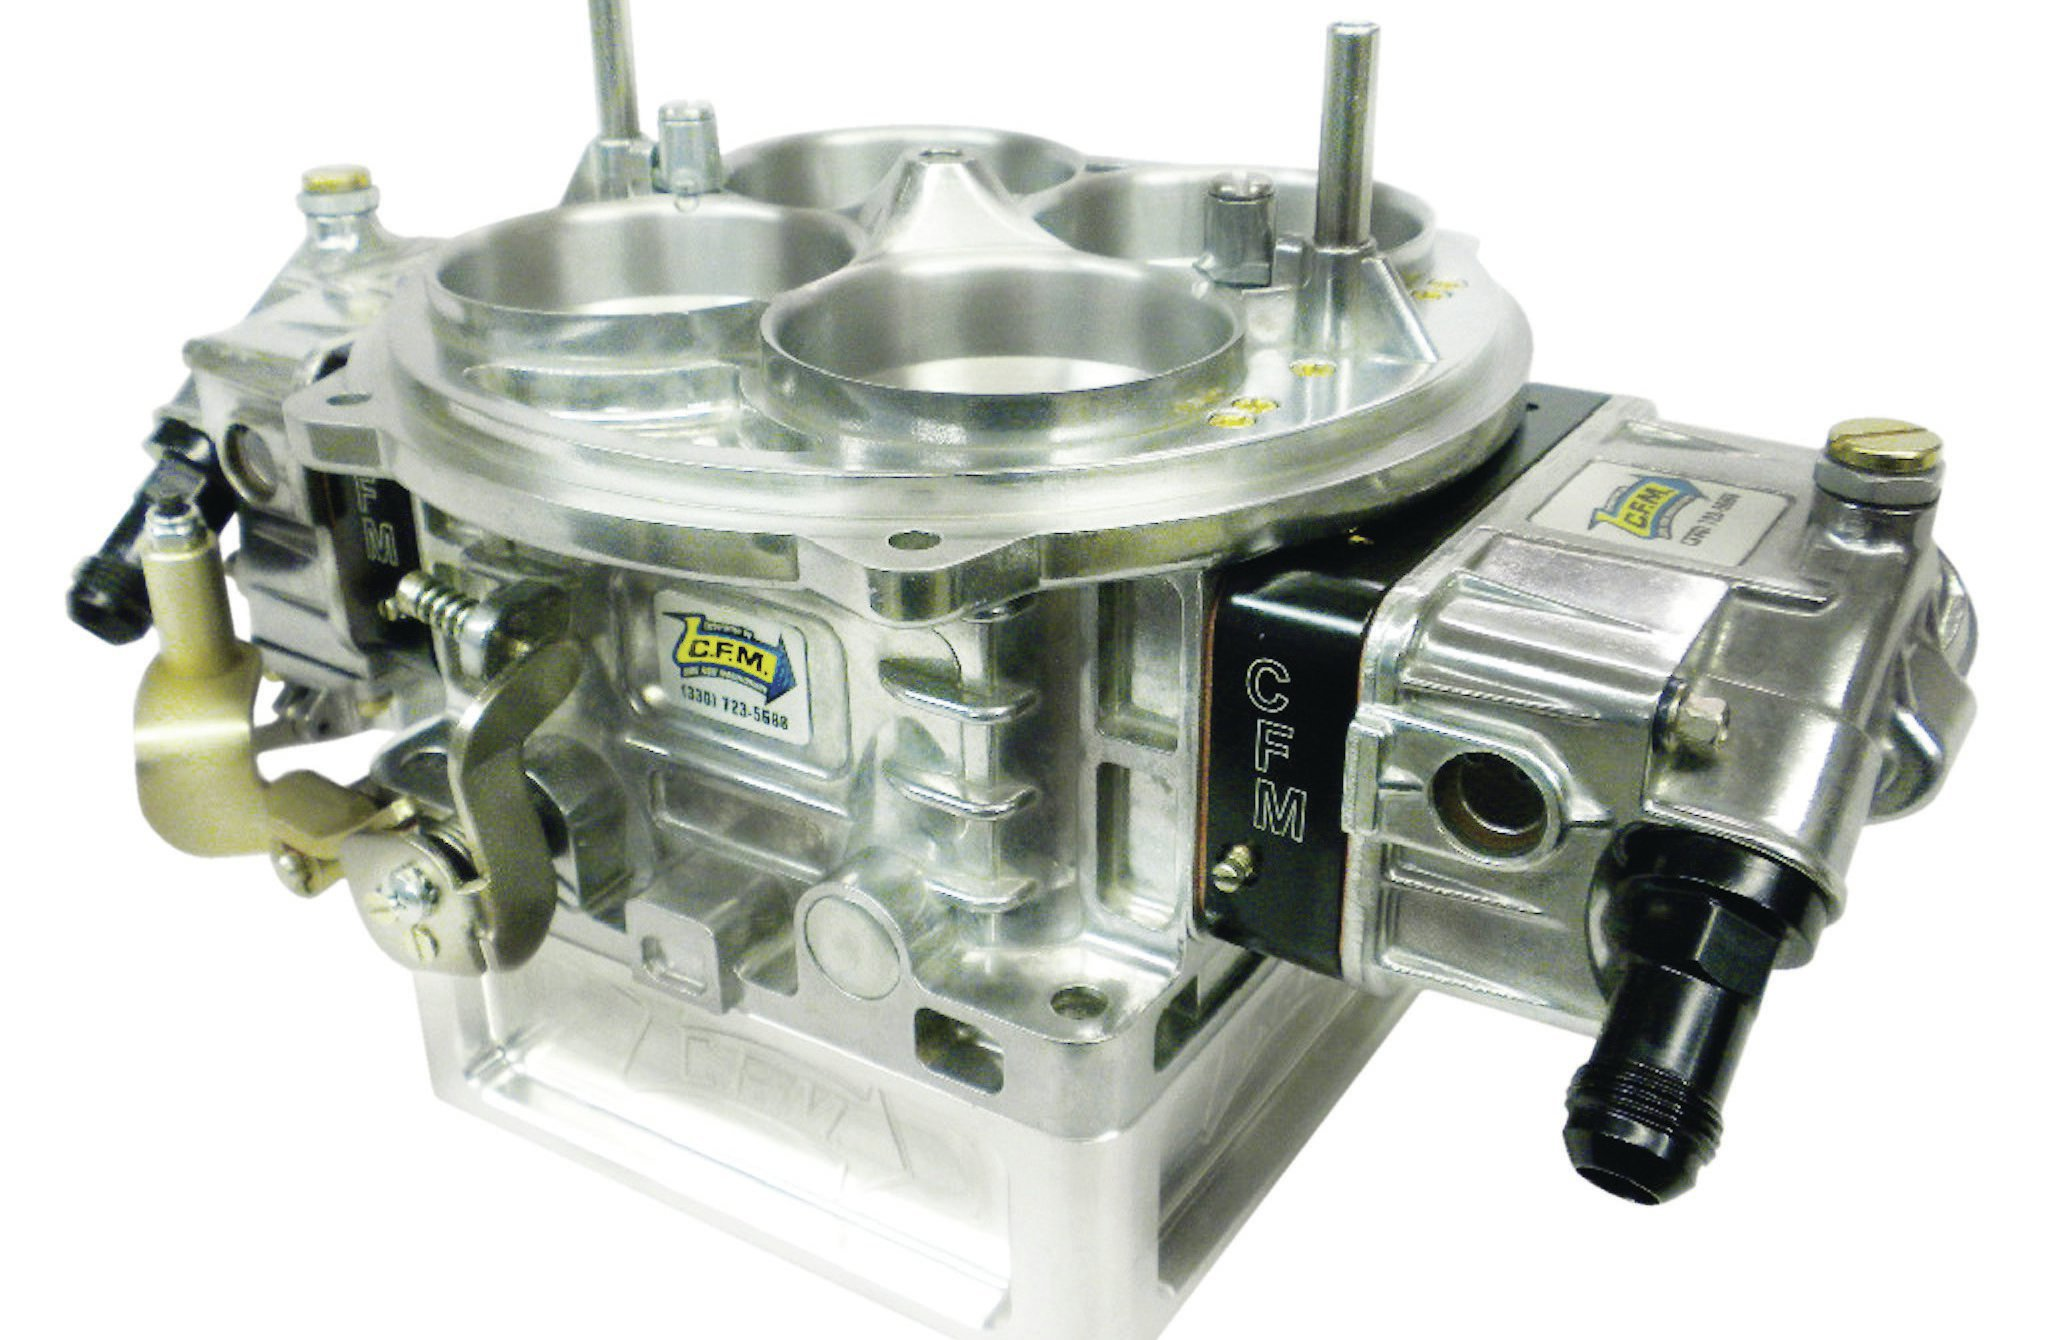 If you are going to feed a 609ci engine with one carb, it had better be a big one. This 1,650-cfm CFM Performance Carbs billet carburetor features 2.5-inch throttle blades and fits on a Dominator base. It uses 0.148-inch jets at all four corners.